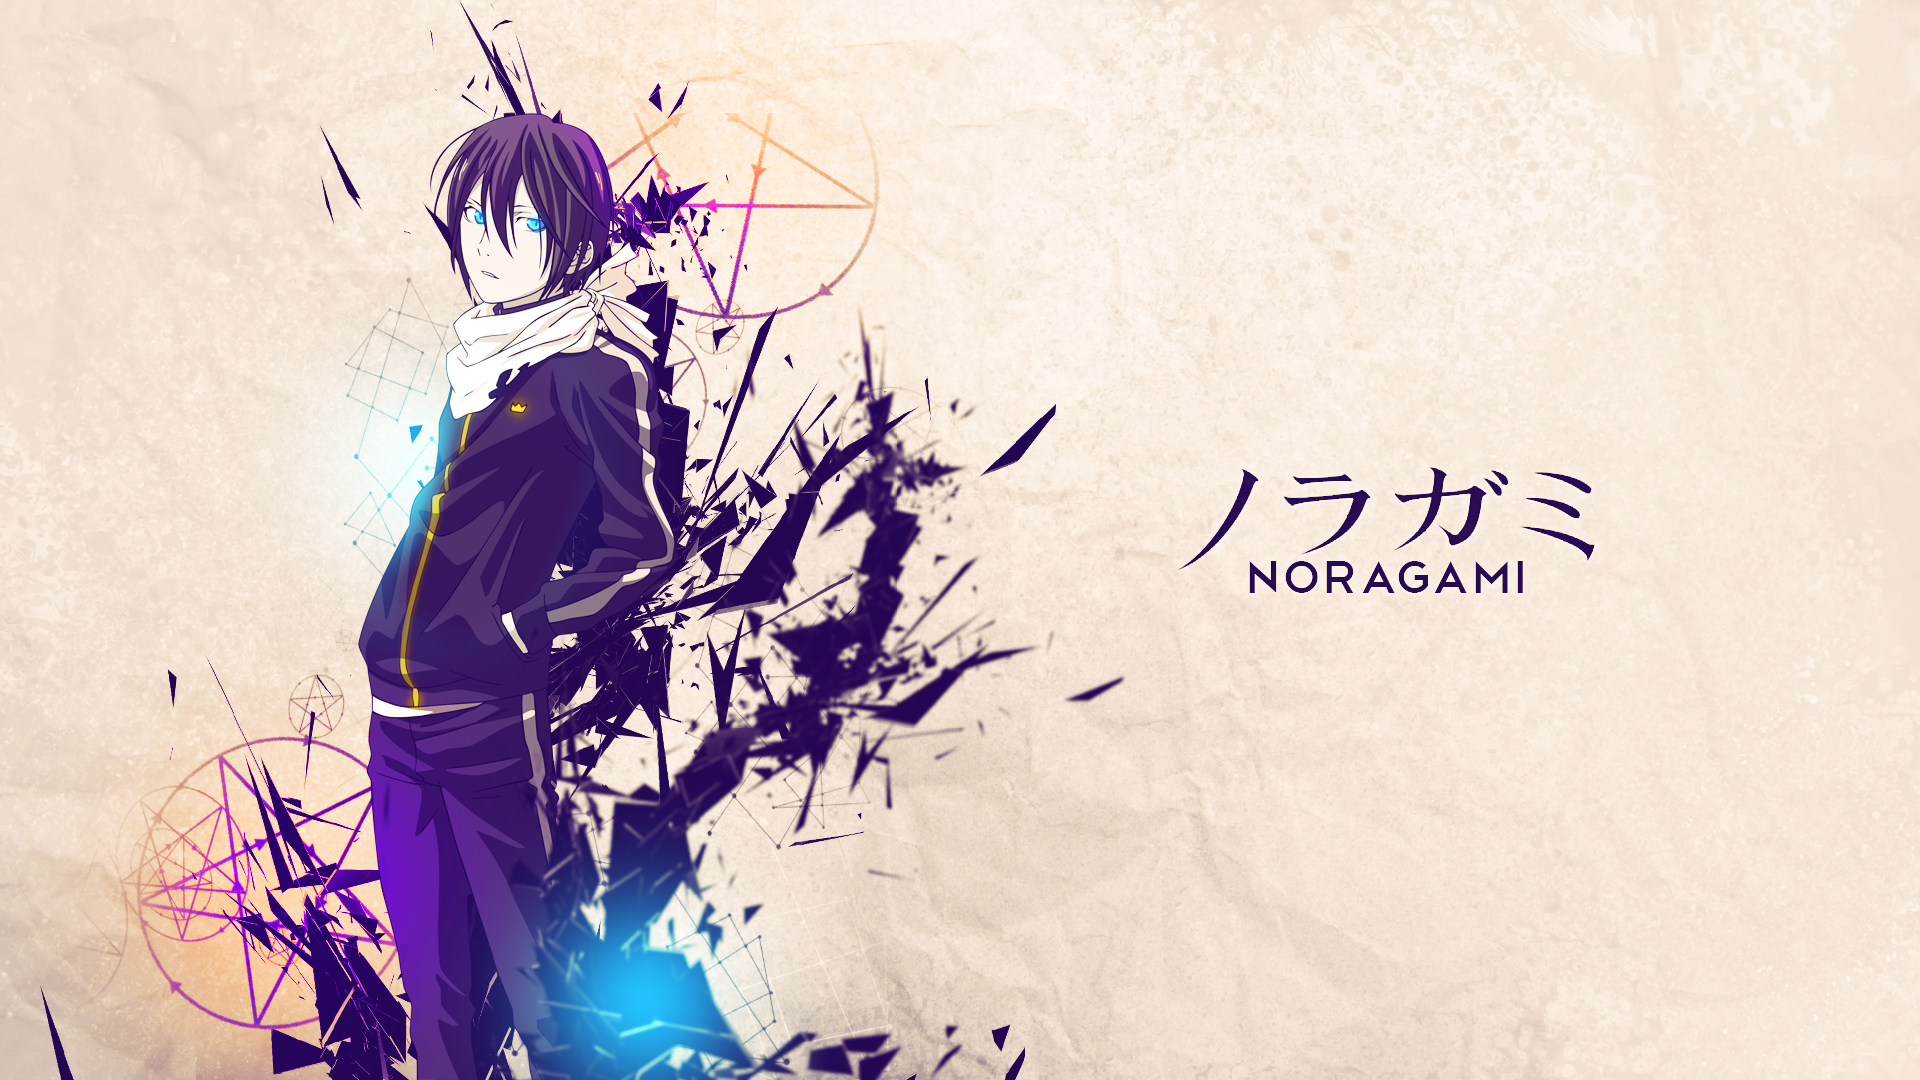 imagen noragami wallpaper by - photo #3